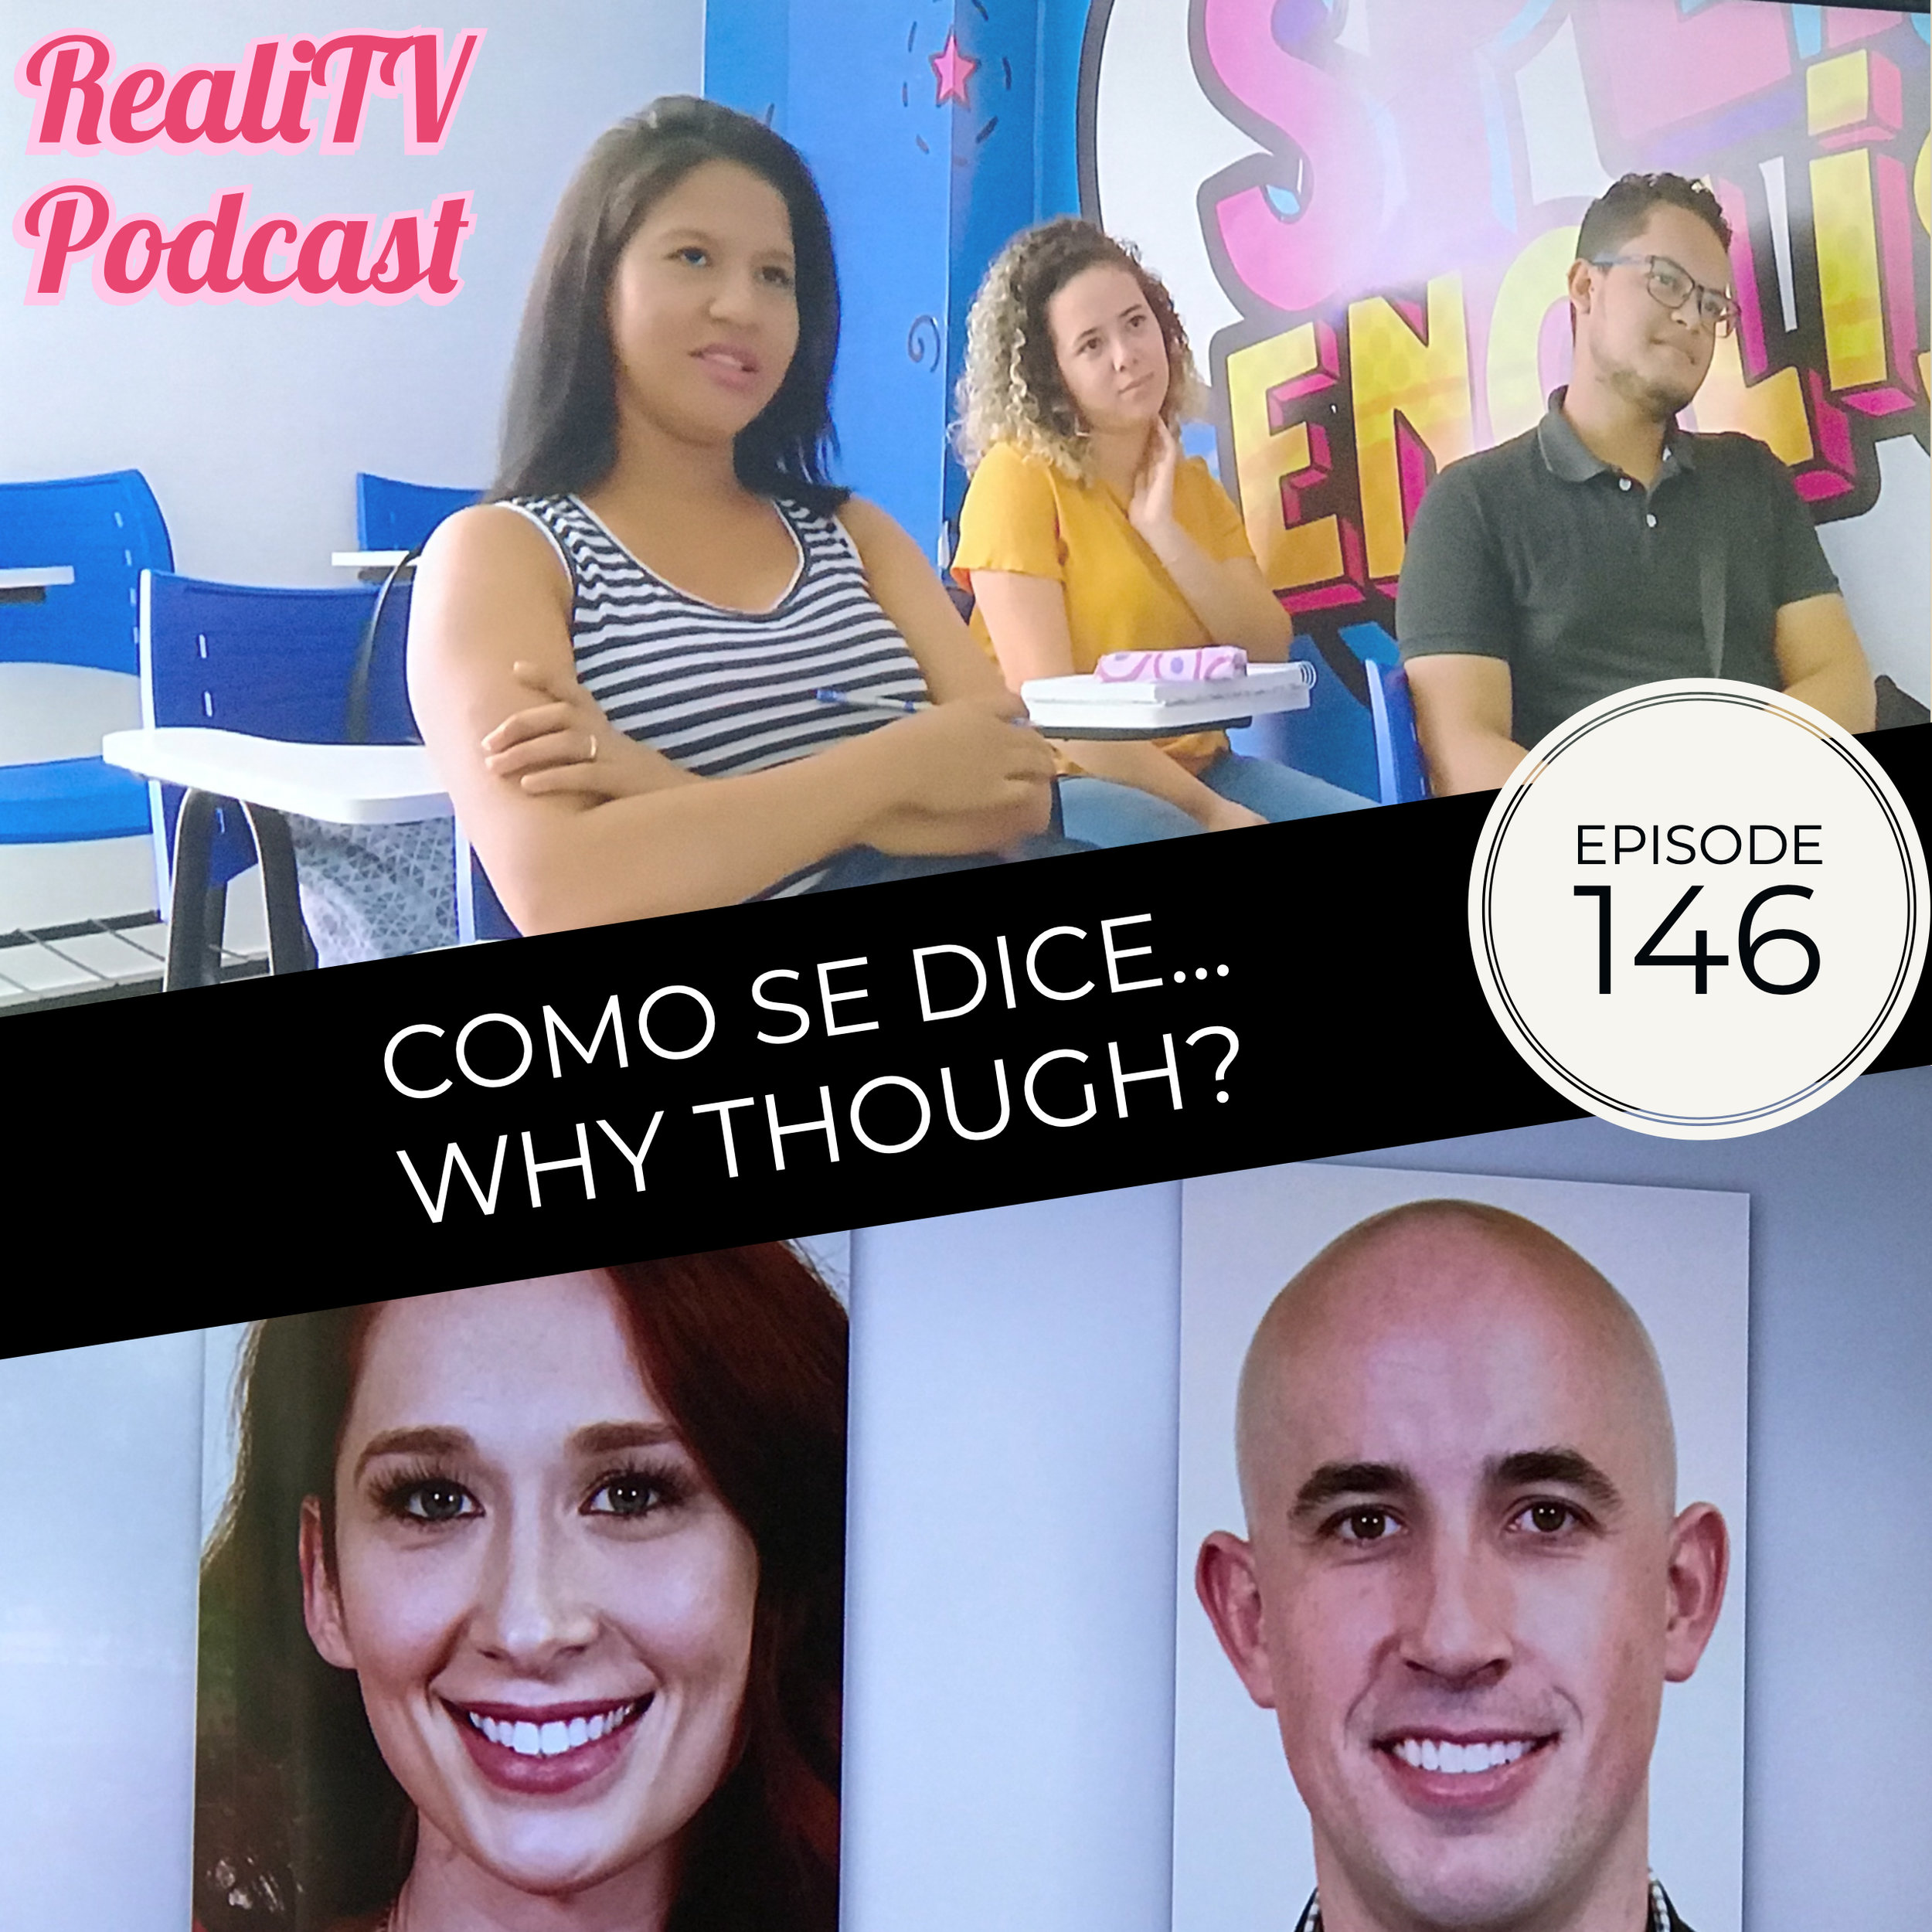 Episode 146: Como Se Dice… Why Though? - Summer is sizzling hot with the best of the worst of the best shows! First up, 90 Day Fiance Happily Ever After. Colt makes it rain camouflage recliners and Elizabeth crimps two-thirds of her hair.Married at First Sight is BACK! With a new therapist on board and Dr. Pepper stepping ever closer into a Little Person diagnosis, the season starts out by matching fraternal twins separated at birth. Mazel Tov!A week is not complete without Sumit (see what I did there?). 90 Day Fiance The Other Way is the gift that keeps on giving…questionable grilled cheese sandwiches. There is so much to discuss so tell your inner-voice to get salty with me.